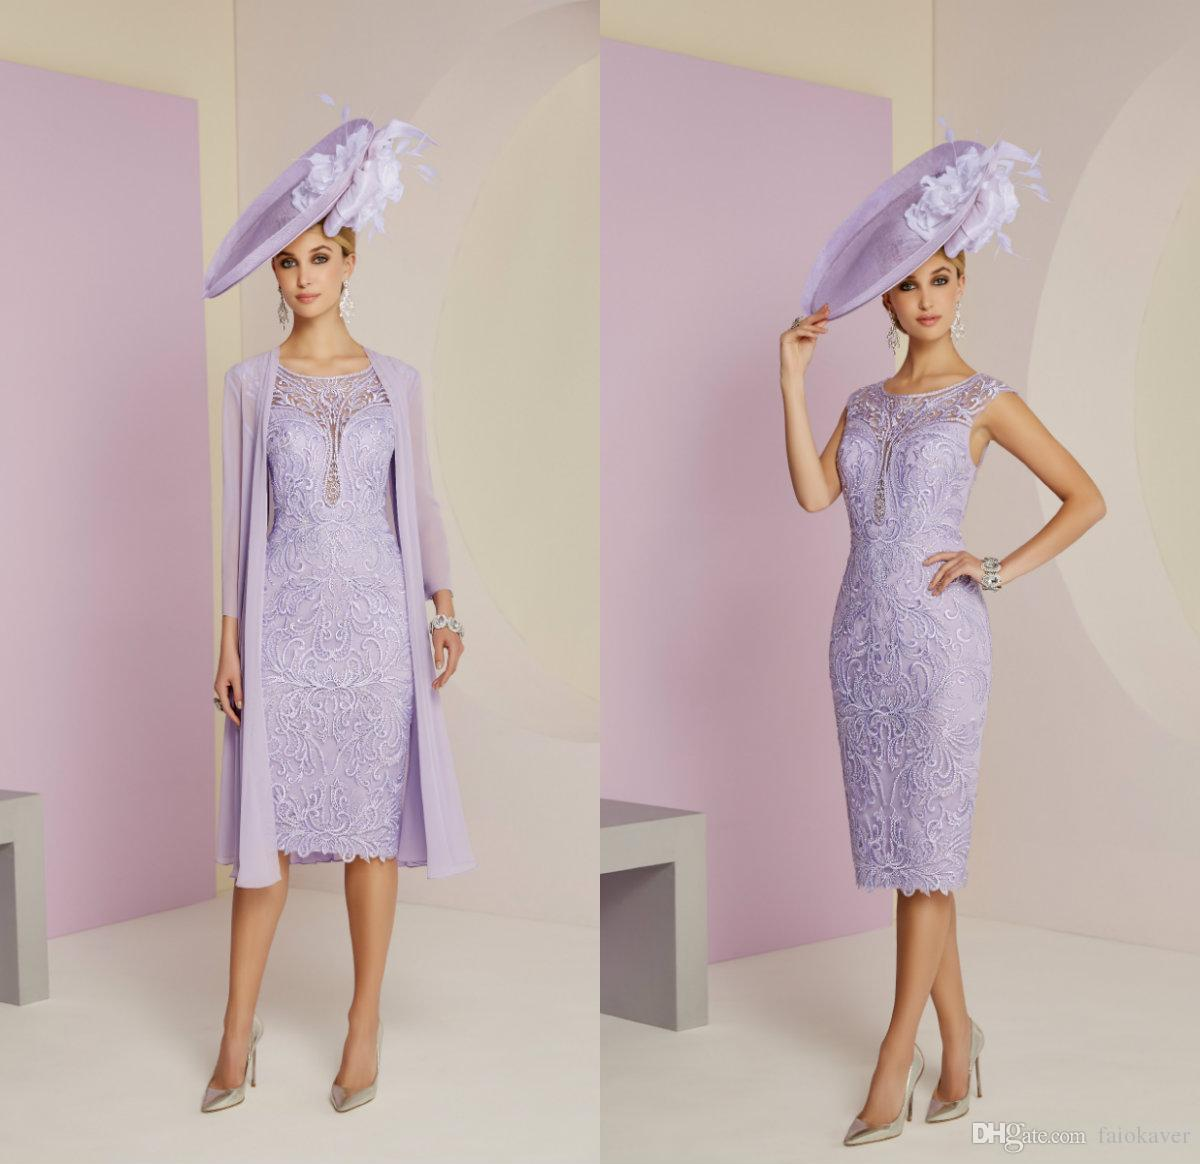 538d6a558e6 2019 Lavender Mother Of The Bride Dresses With Long Jacket Jewel Neck  Chiffon Evening Gowns Under Knee Length A Line Wedding Guest Dress Mother  Of The Bride ...